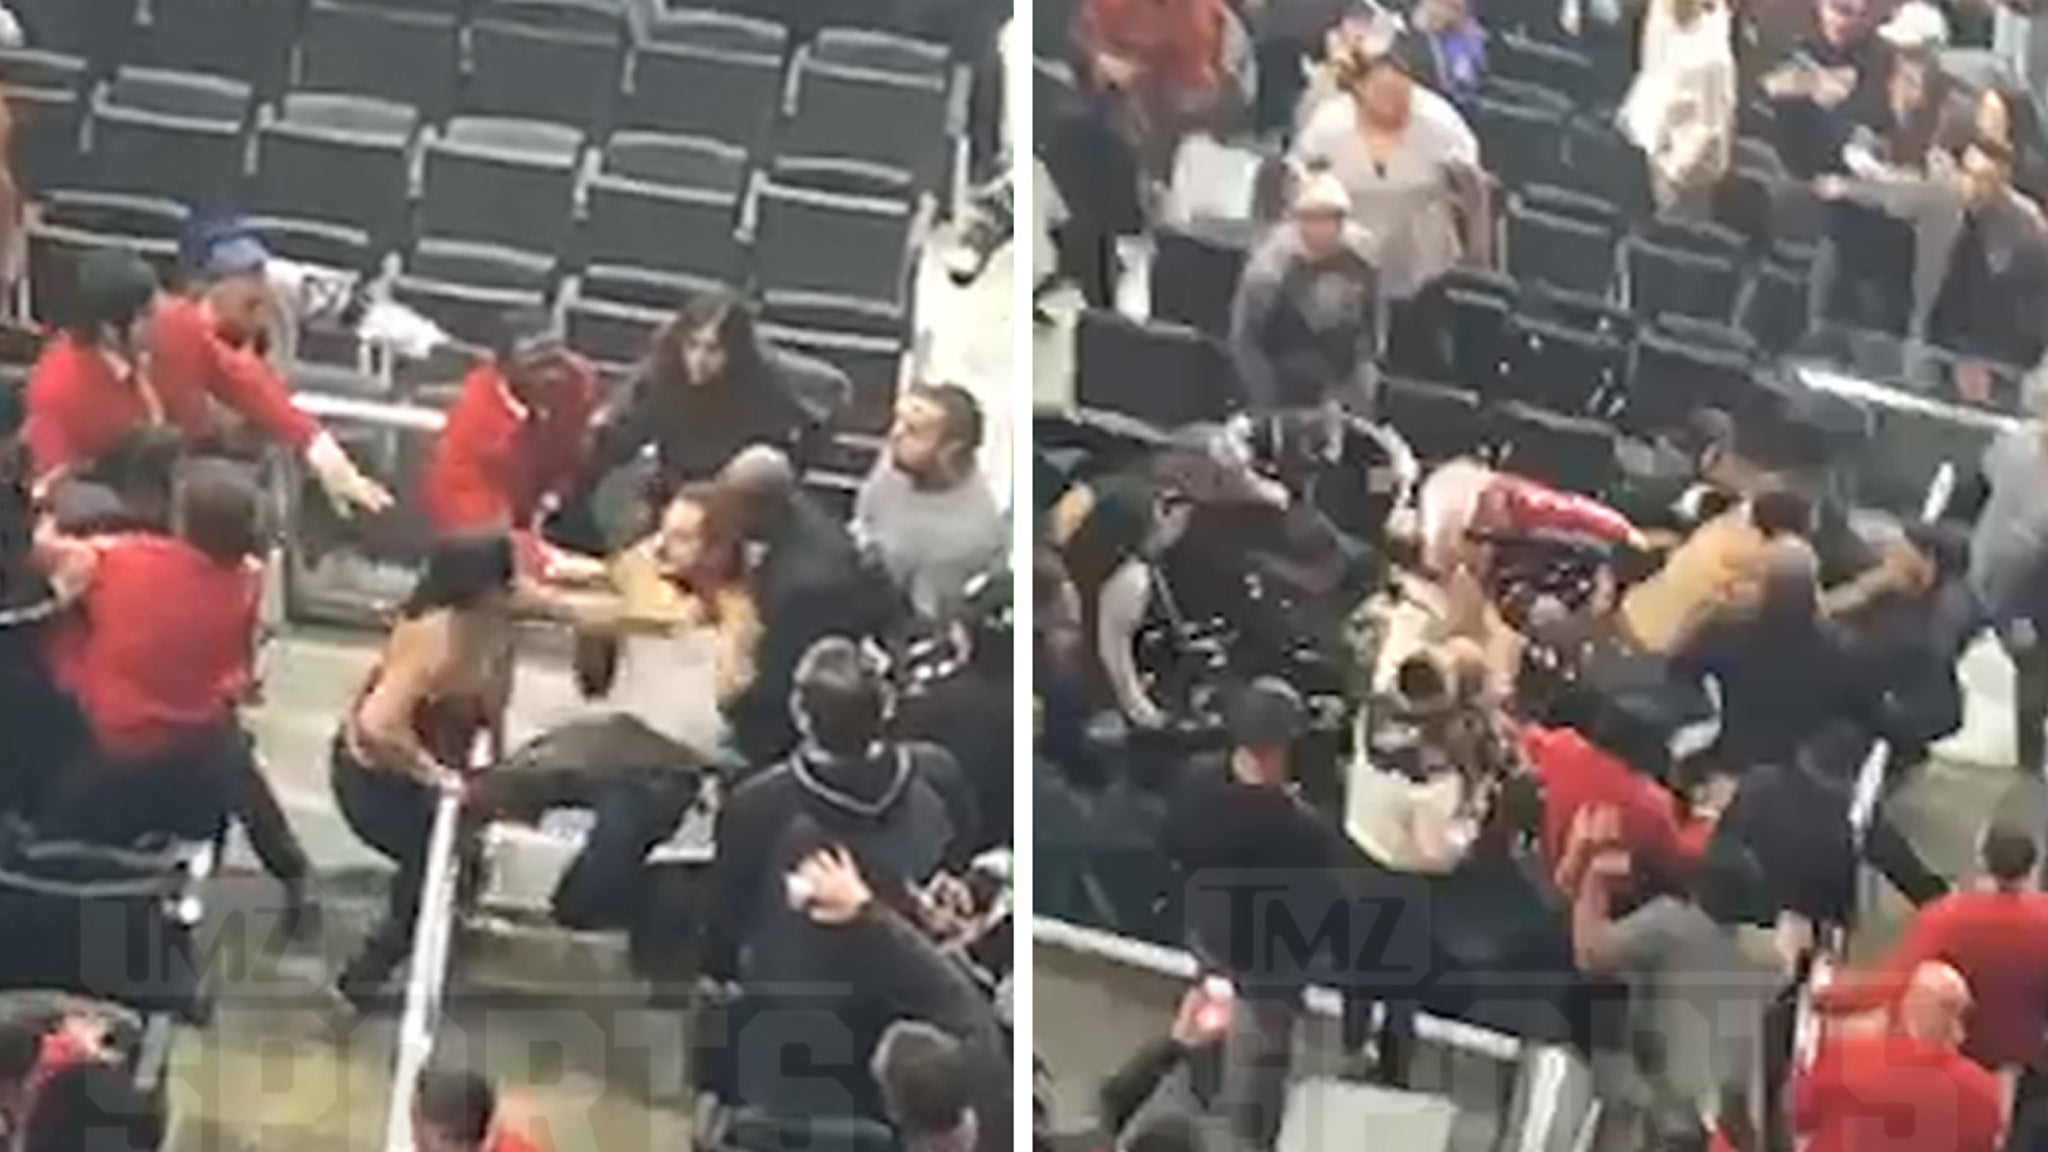 L.A. Kings Fans Get In Insane Brawl, Shirtless Haymakers & Popcorn Showers!